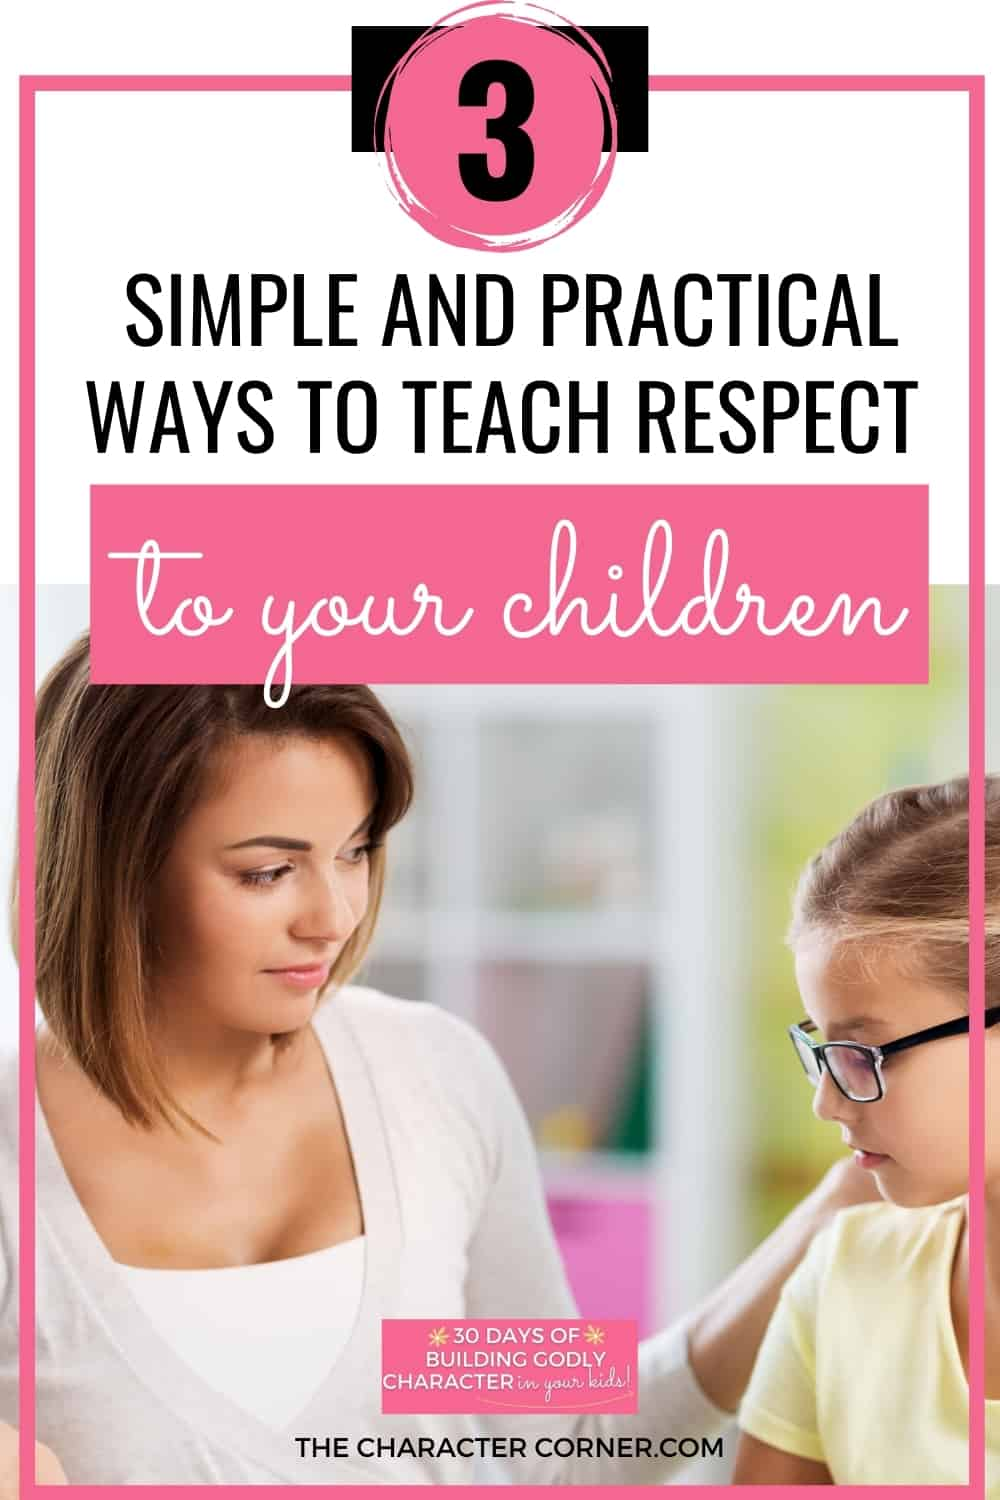 Mother talking to daughter text on image reads 3 Simple And Practical Ways To Teach Respect To Your Children